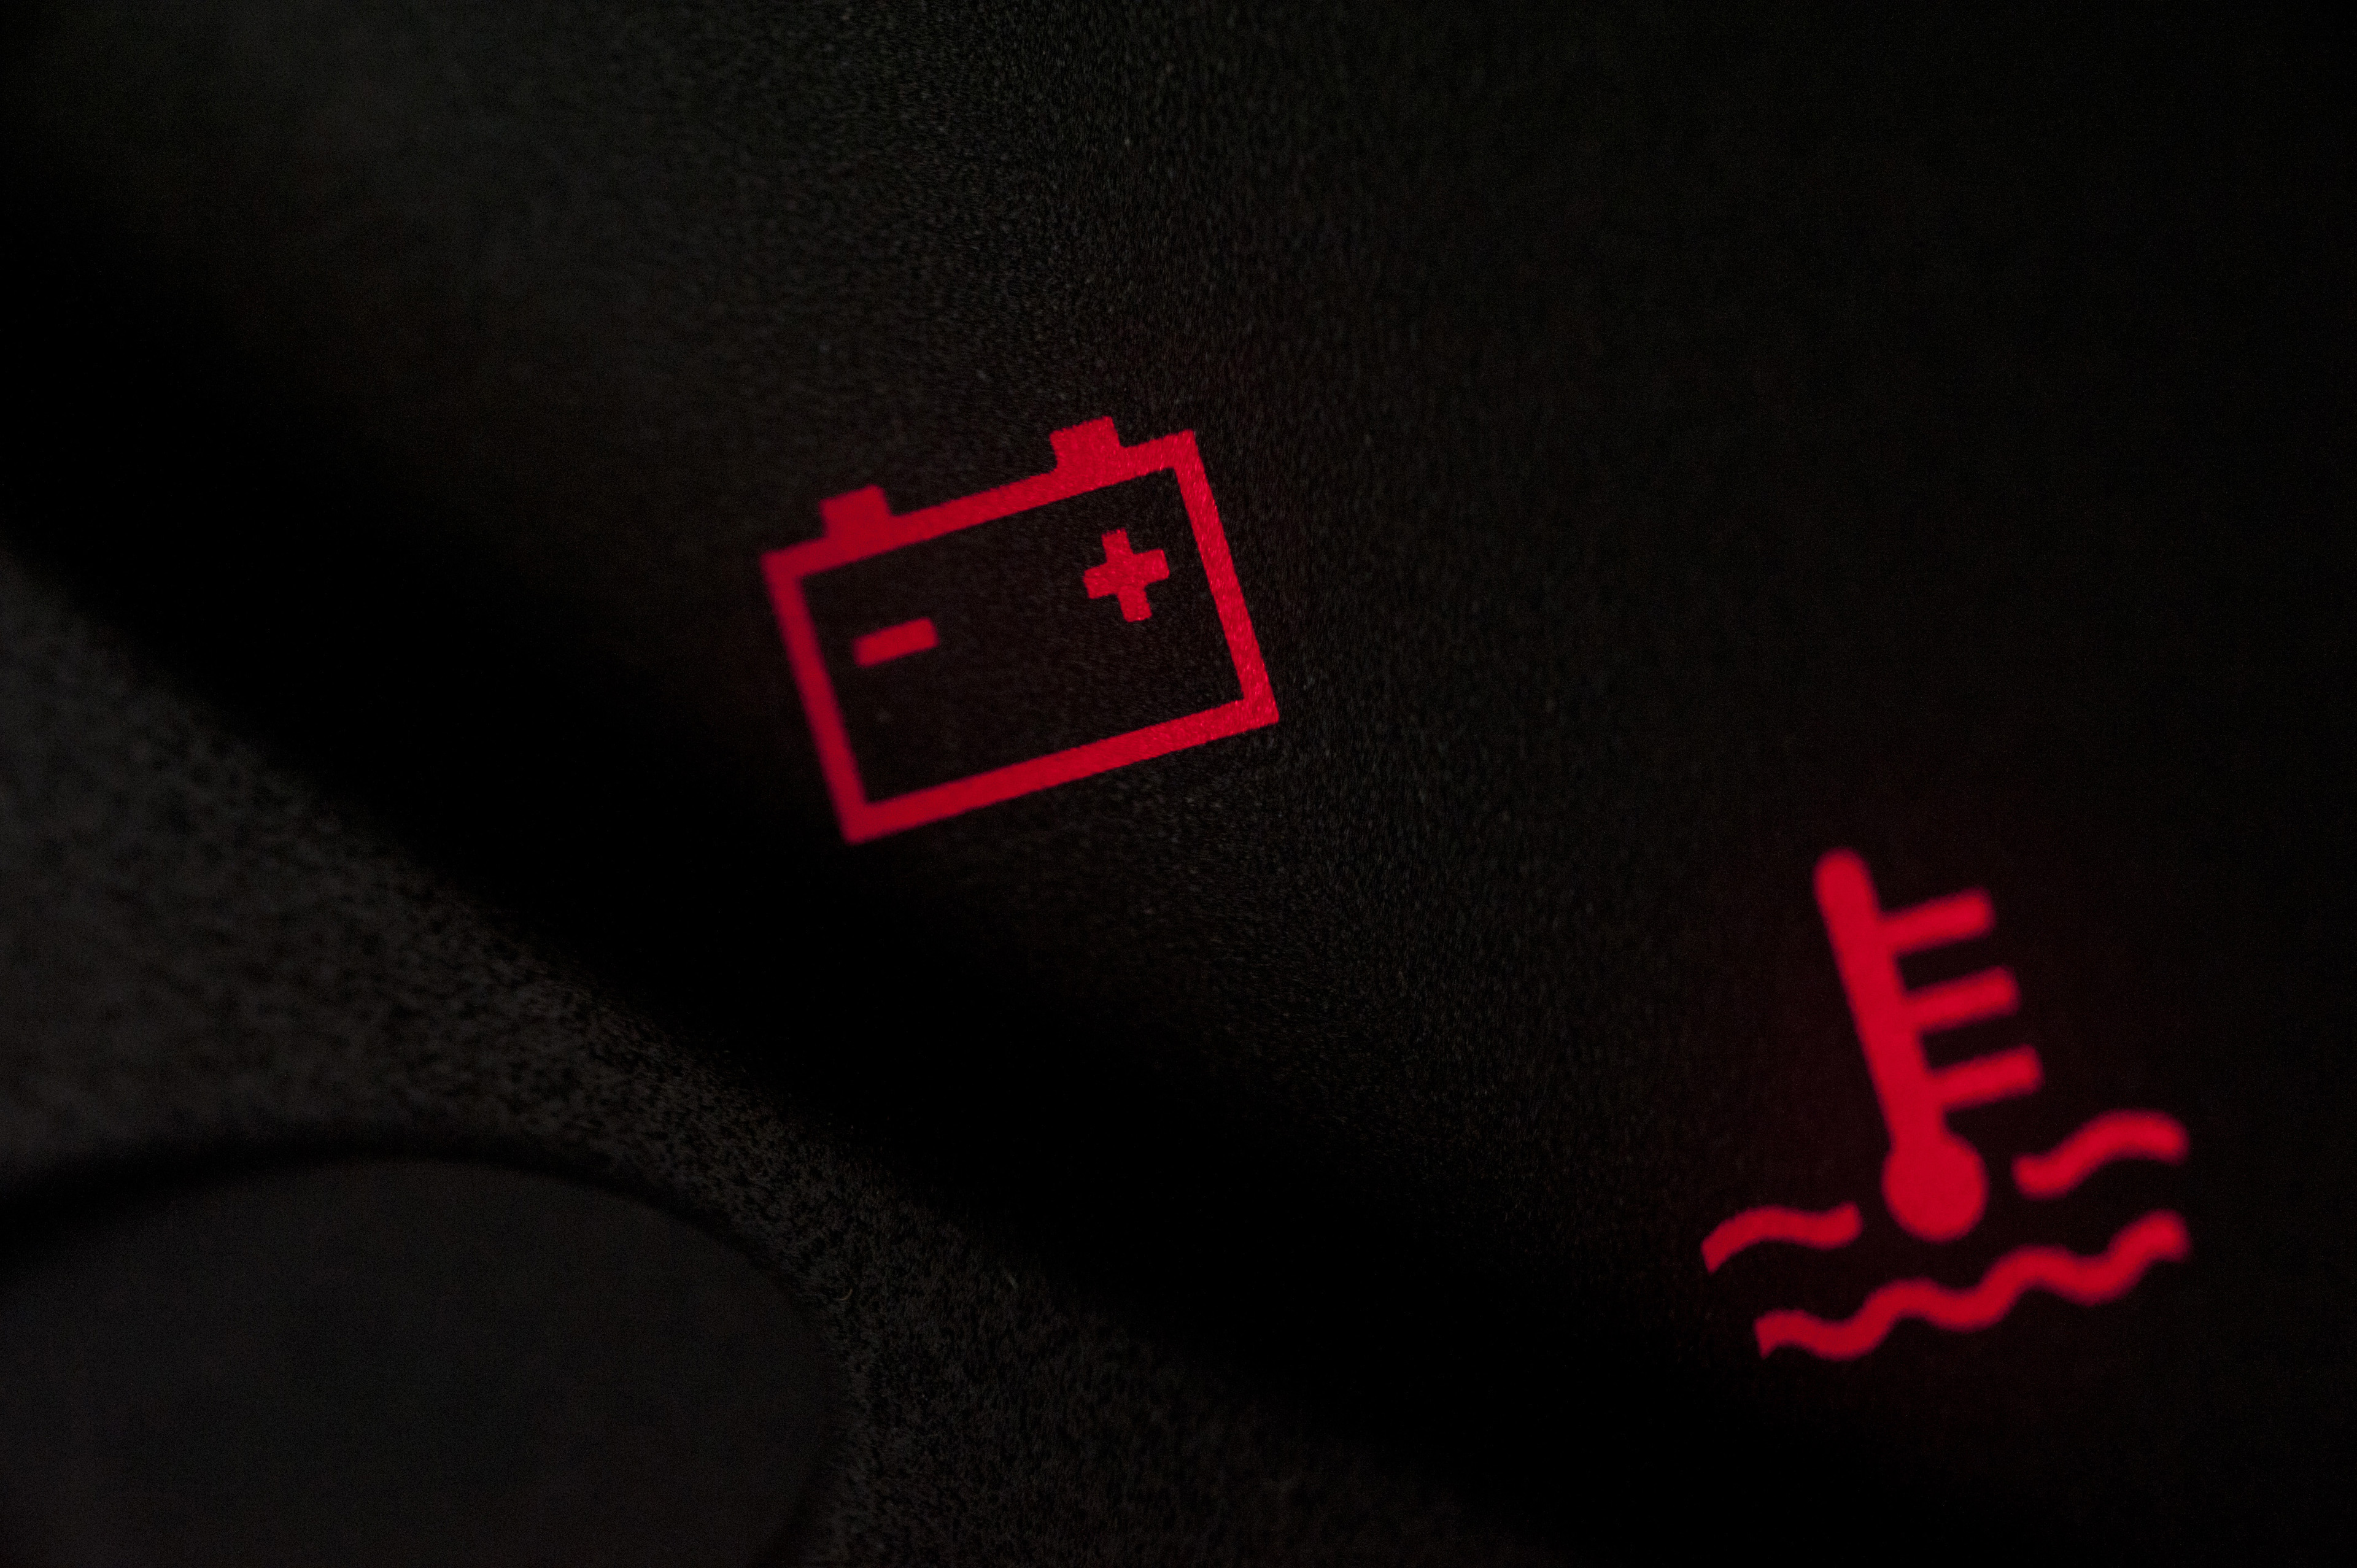 Battery and temperature or fuel warning lights illuminated in red on a vehicle display during ignition start up as the system checks for problems